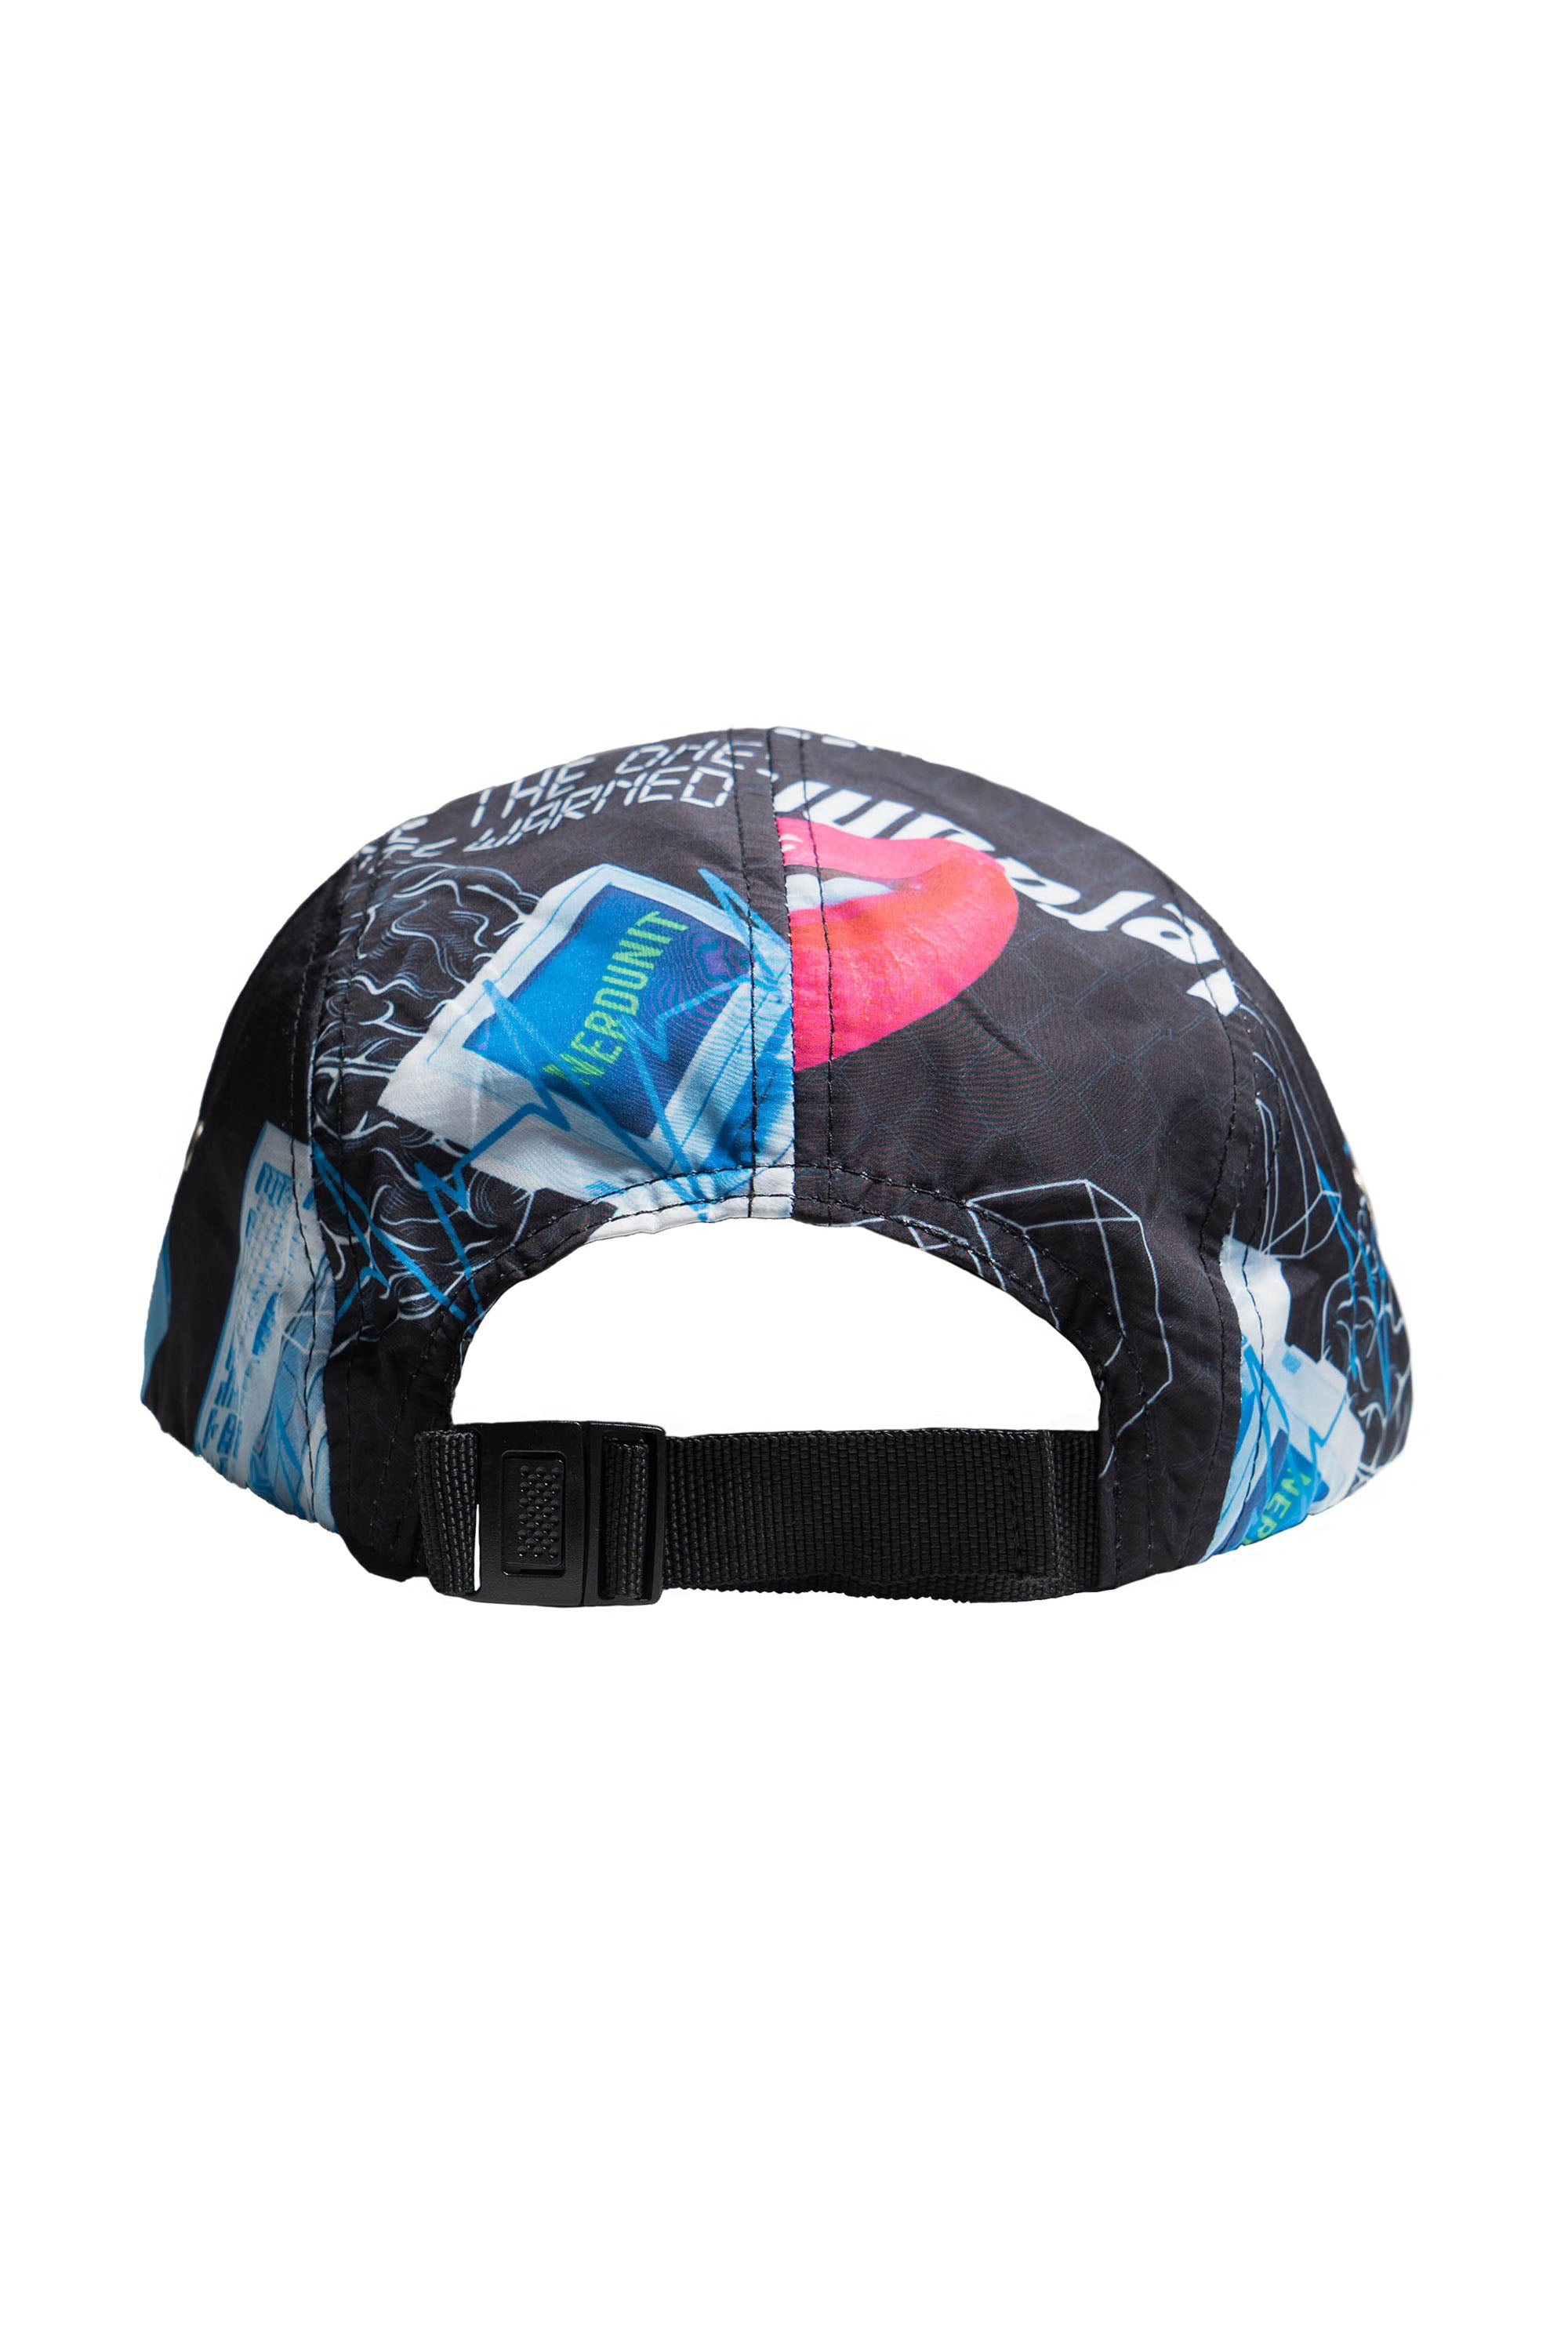 MF ALL OVER PRINT CAMP CAP (MF ALL OVER PRINTキャンプCAP)